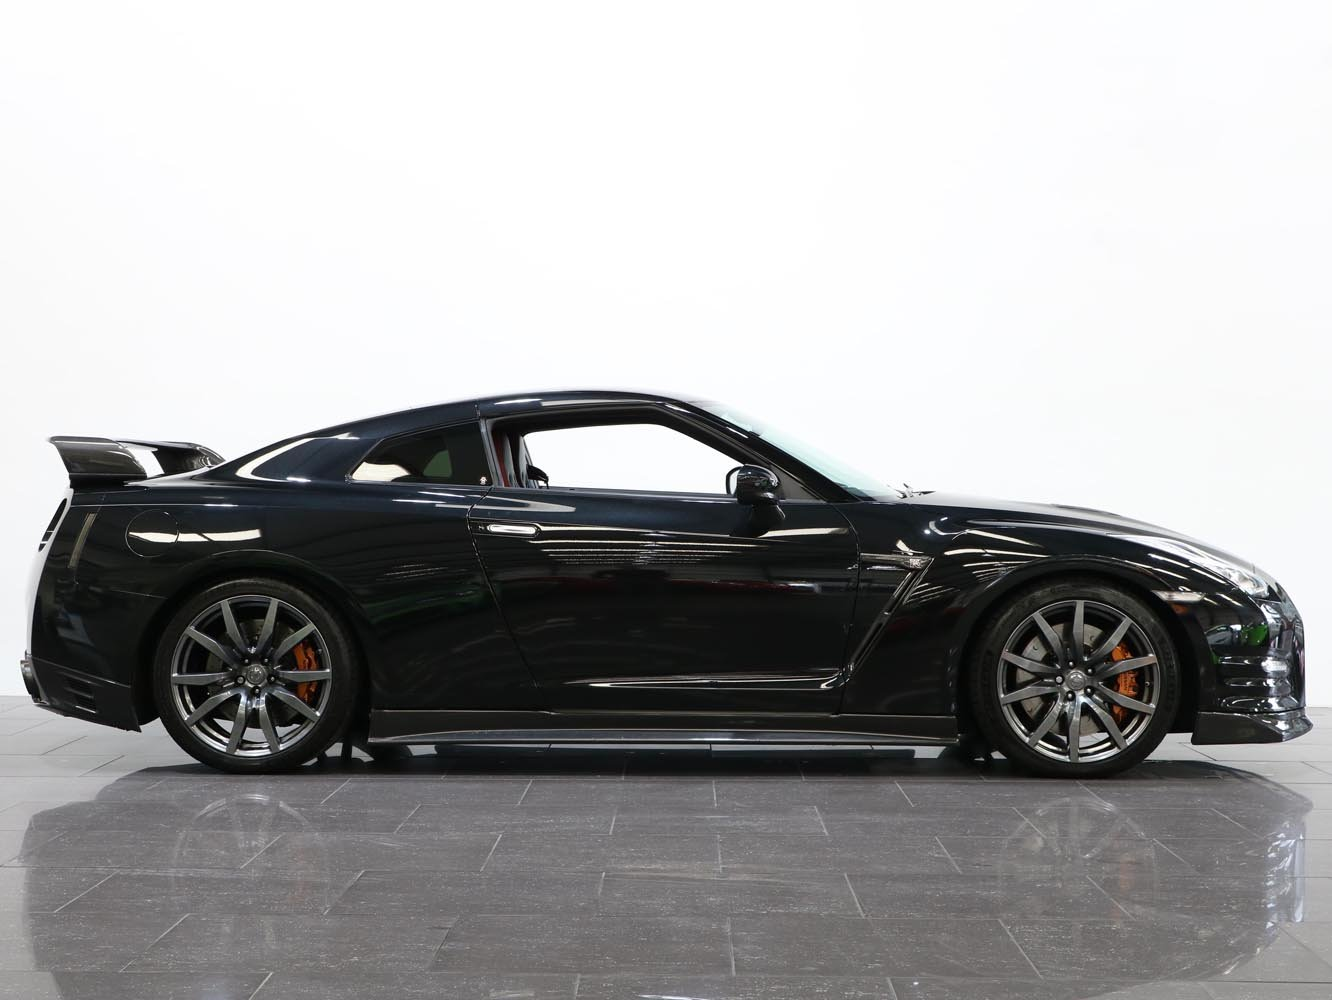 2015 15 15 NISSAN GTR LITCHFIELD 3.8 V6 PREMIUM EDITION AUTO For Sale (picture 2 of 6)